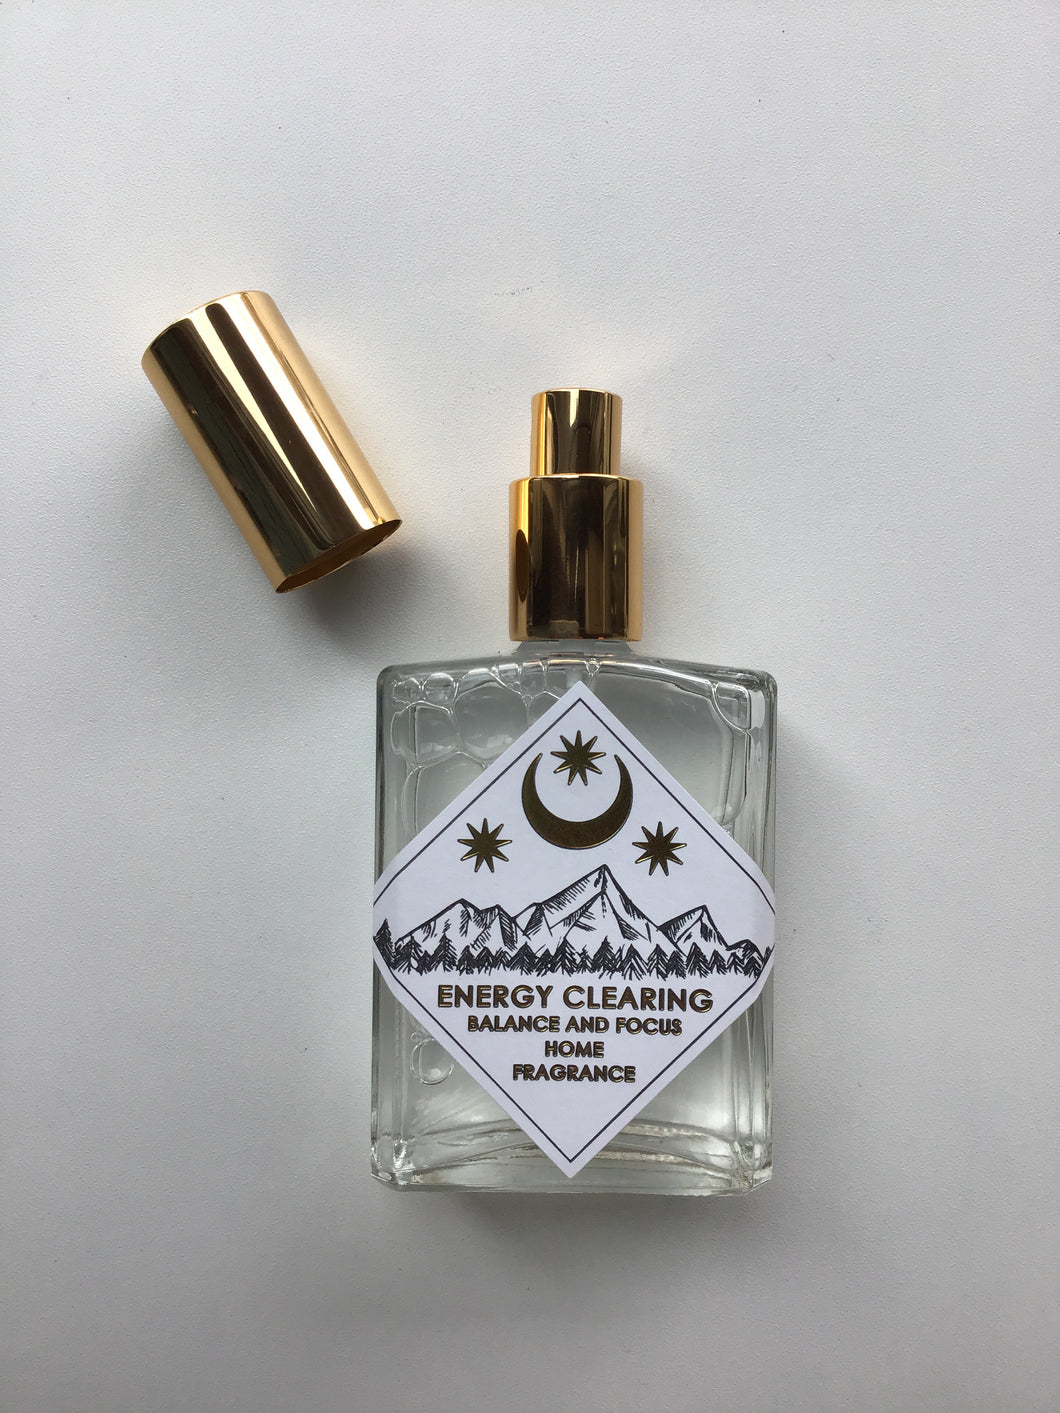 Energy Clearing Home Fragrance